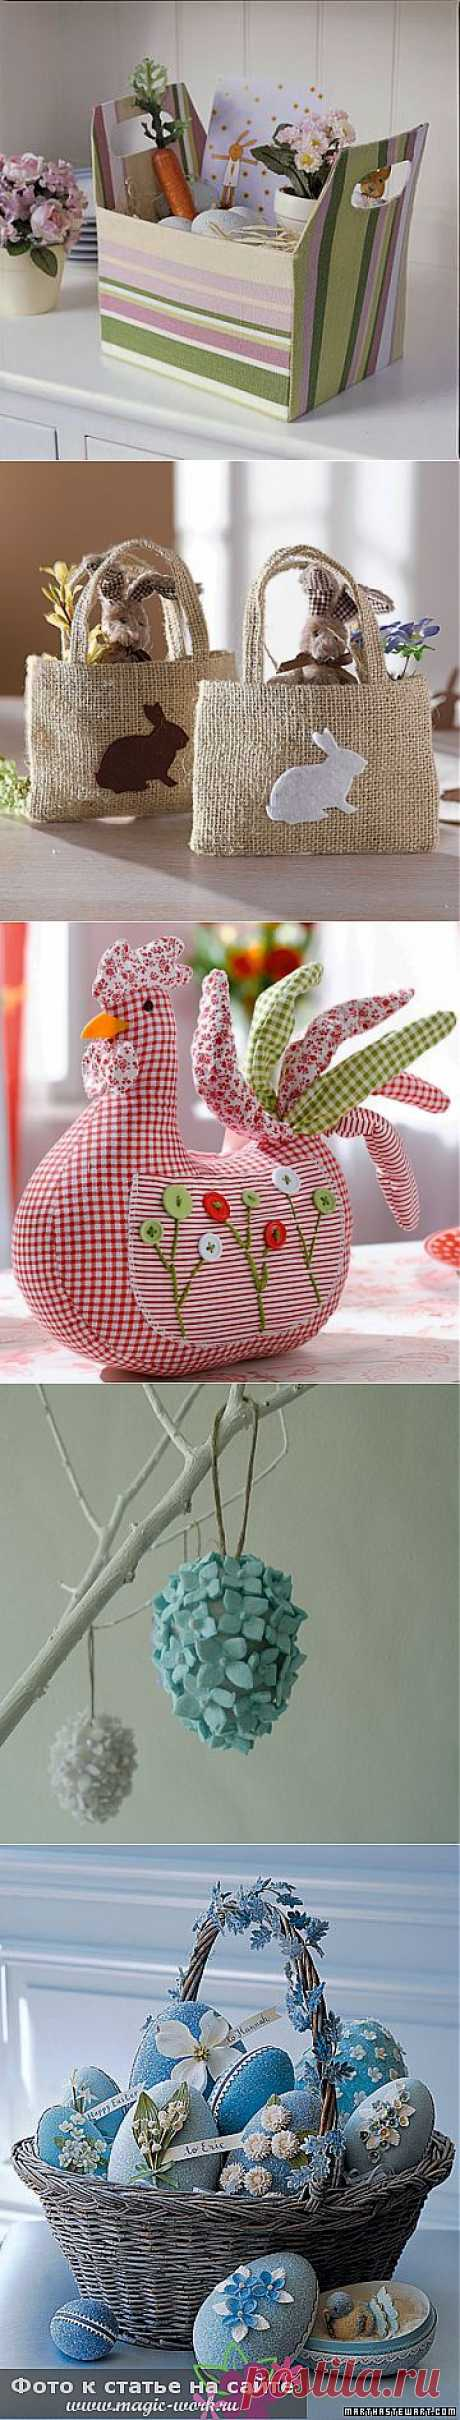 ideas for Easter - such beauty, girls!!!!!!!!!!!!!!!! it is a lot of!!! - Babyblog.ru